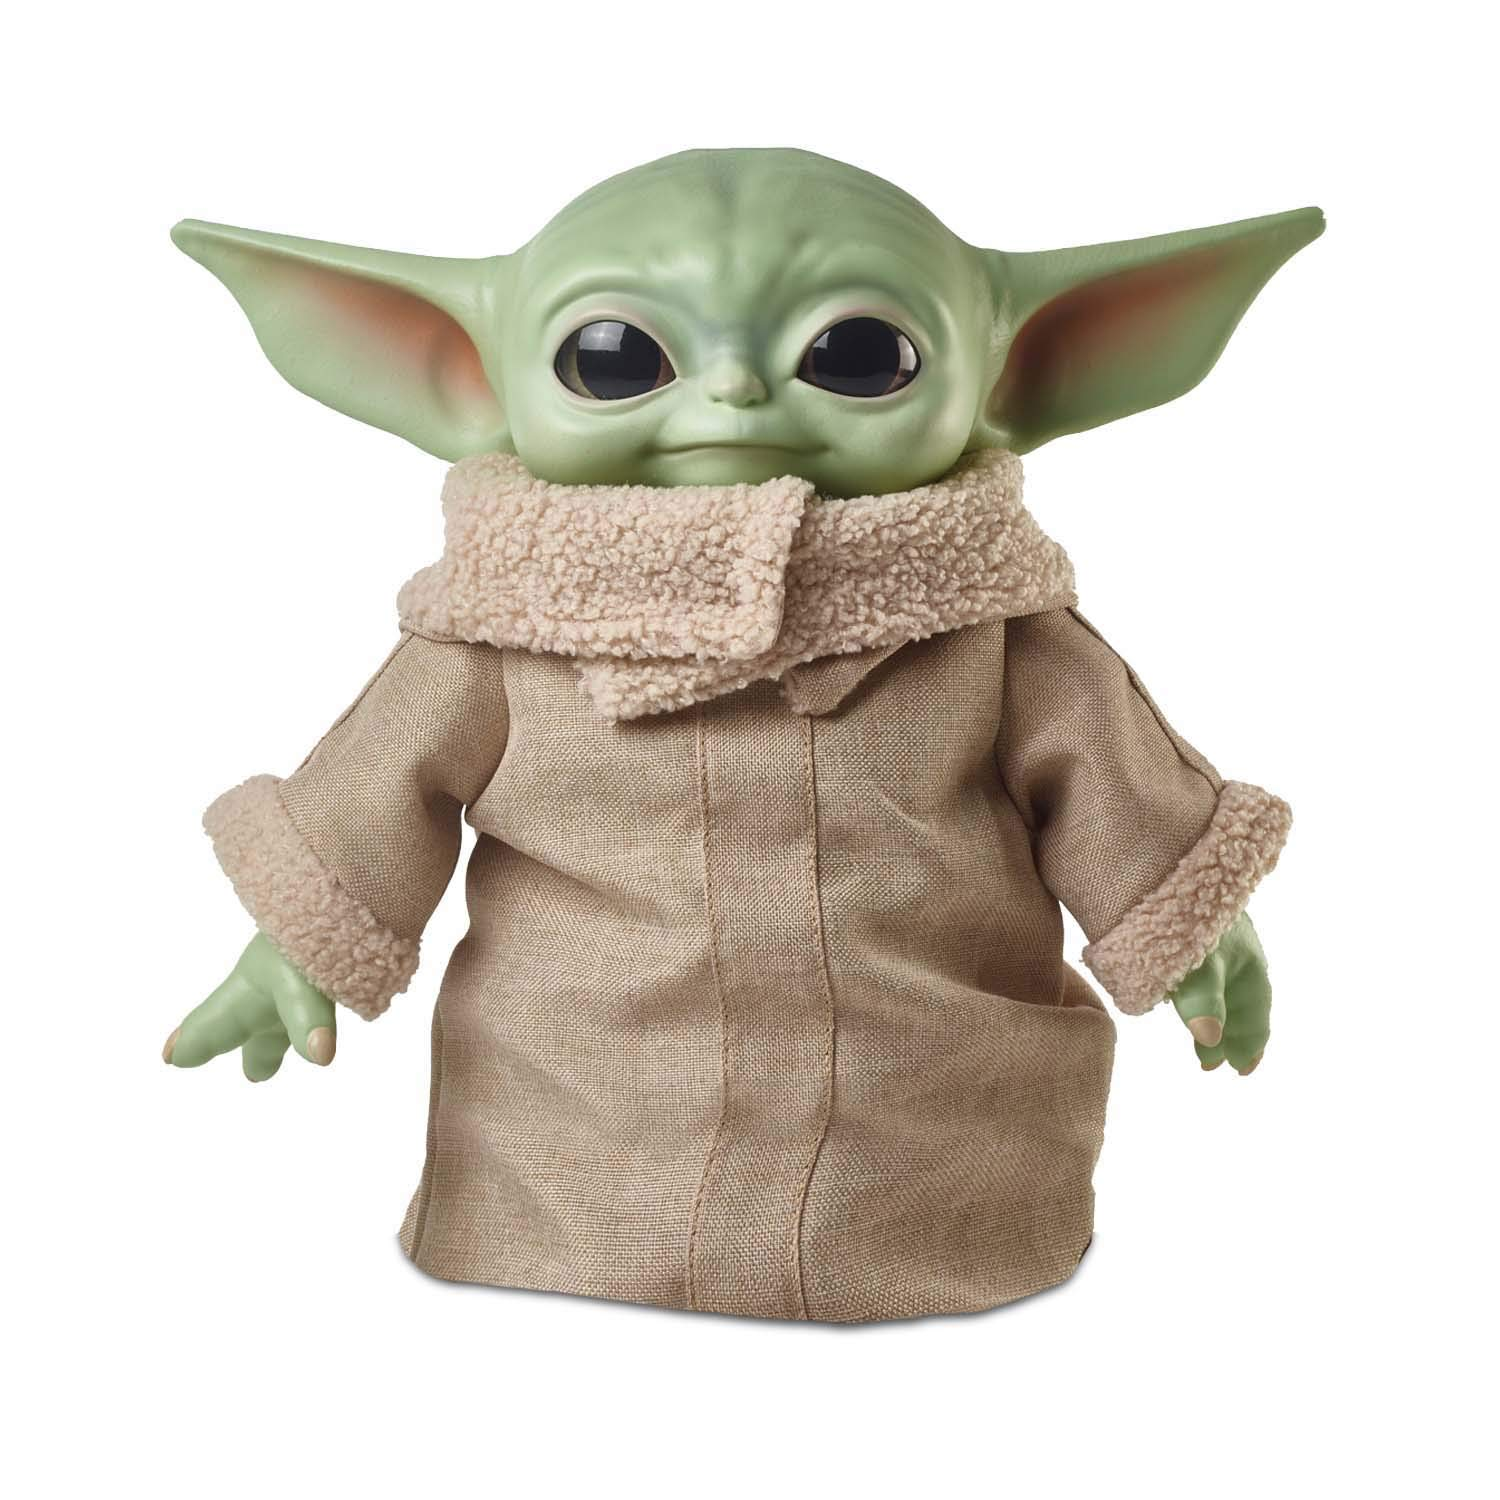 Star Wars The Child Plush Toy, 11-inch Small Yoda